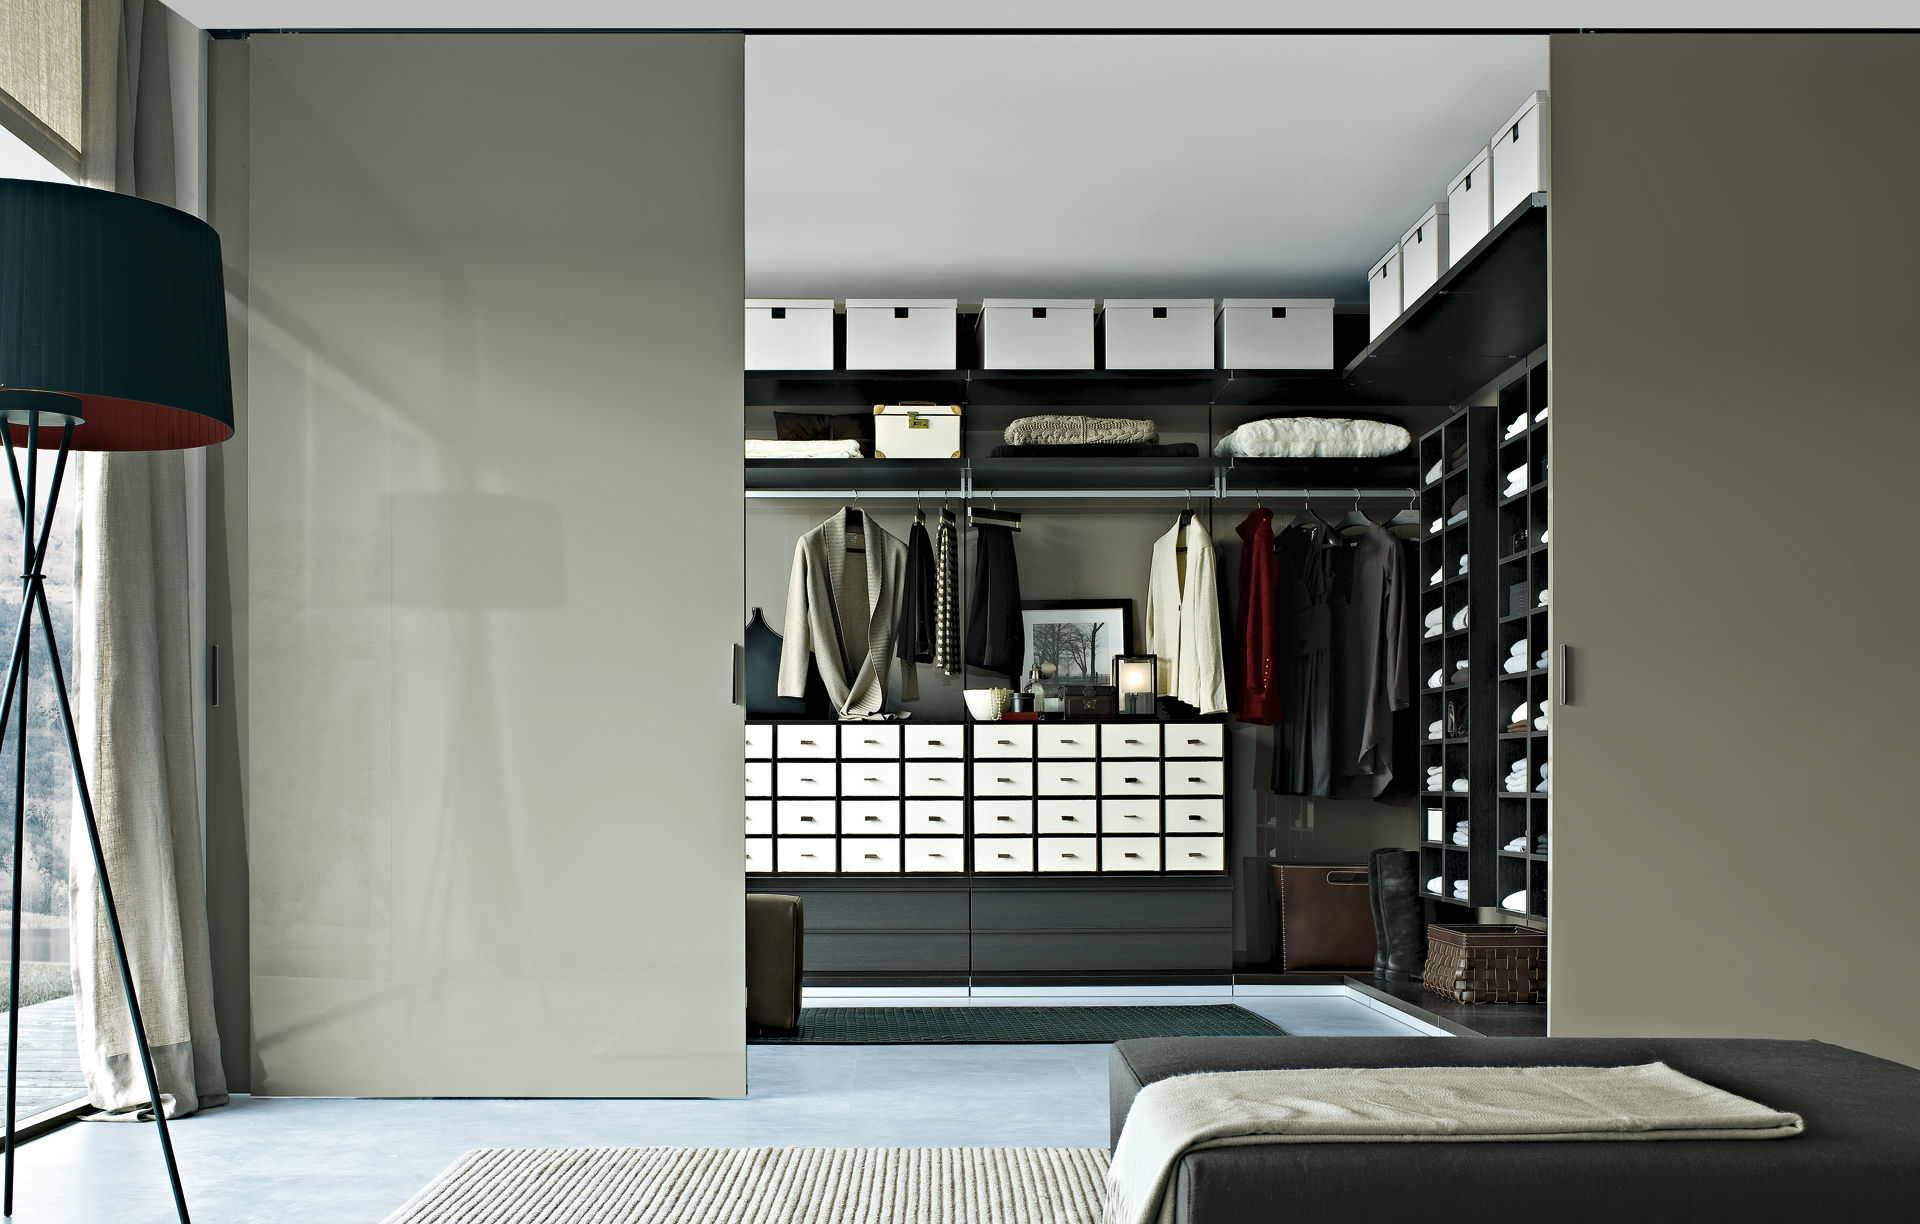 Delicieux Elegant Walk In Closet Ideas With Drawers And Baskets Closed With Grey  Sliding Door